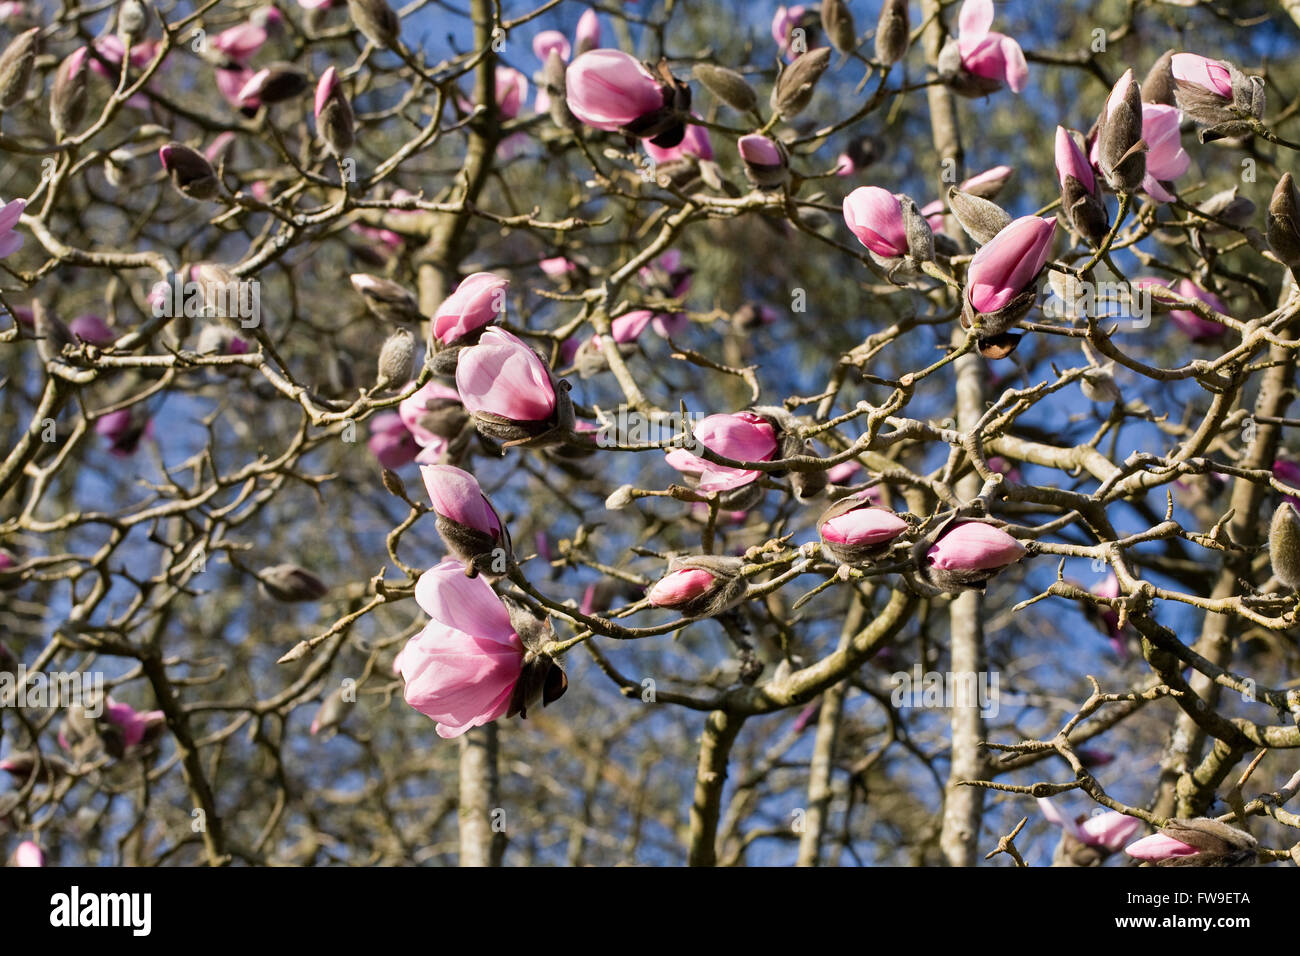 Magnolia 'Caerhays Belle' flowers. Stock Photo